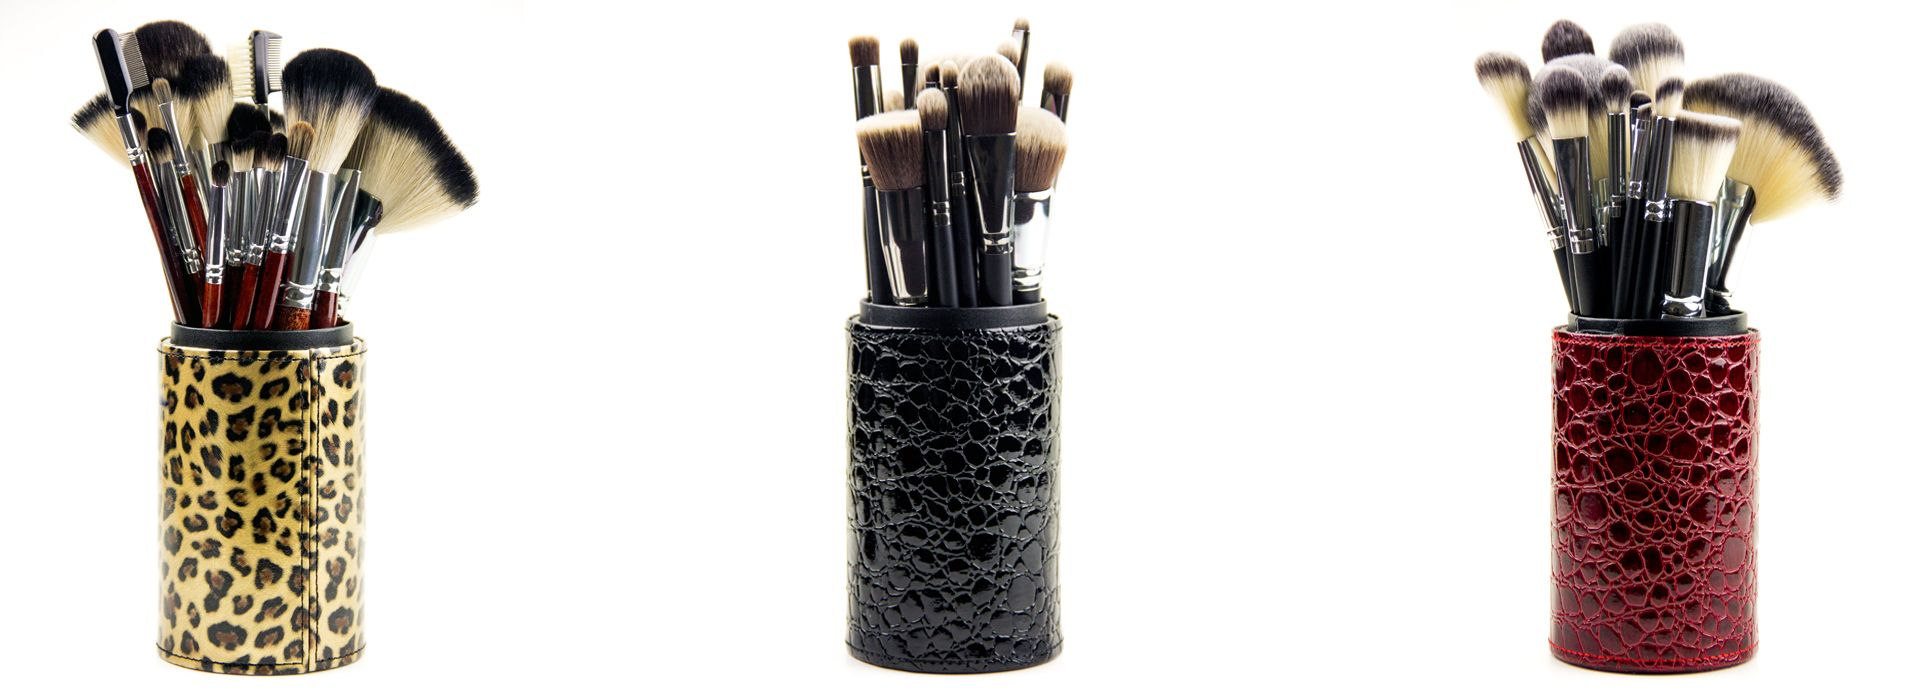 Professional Private Label Makeup Brushes, Brush Sets and